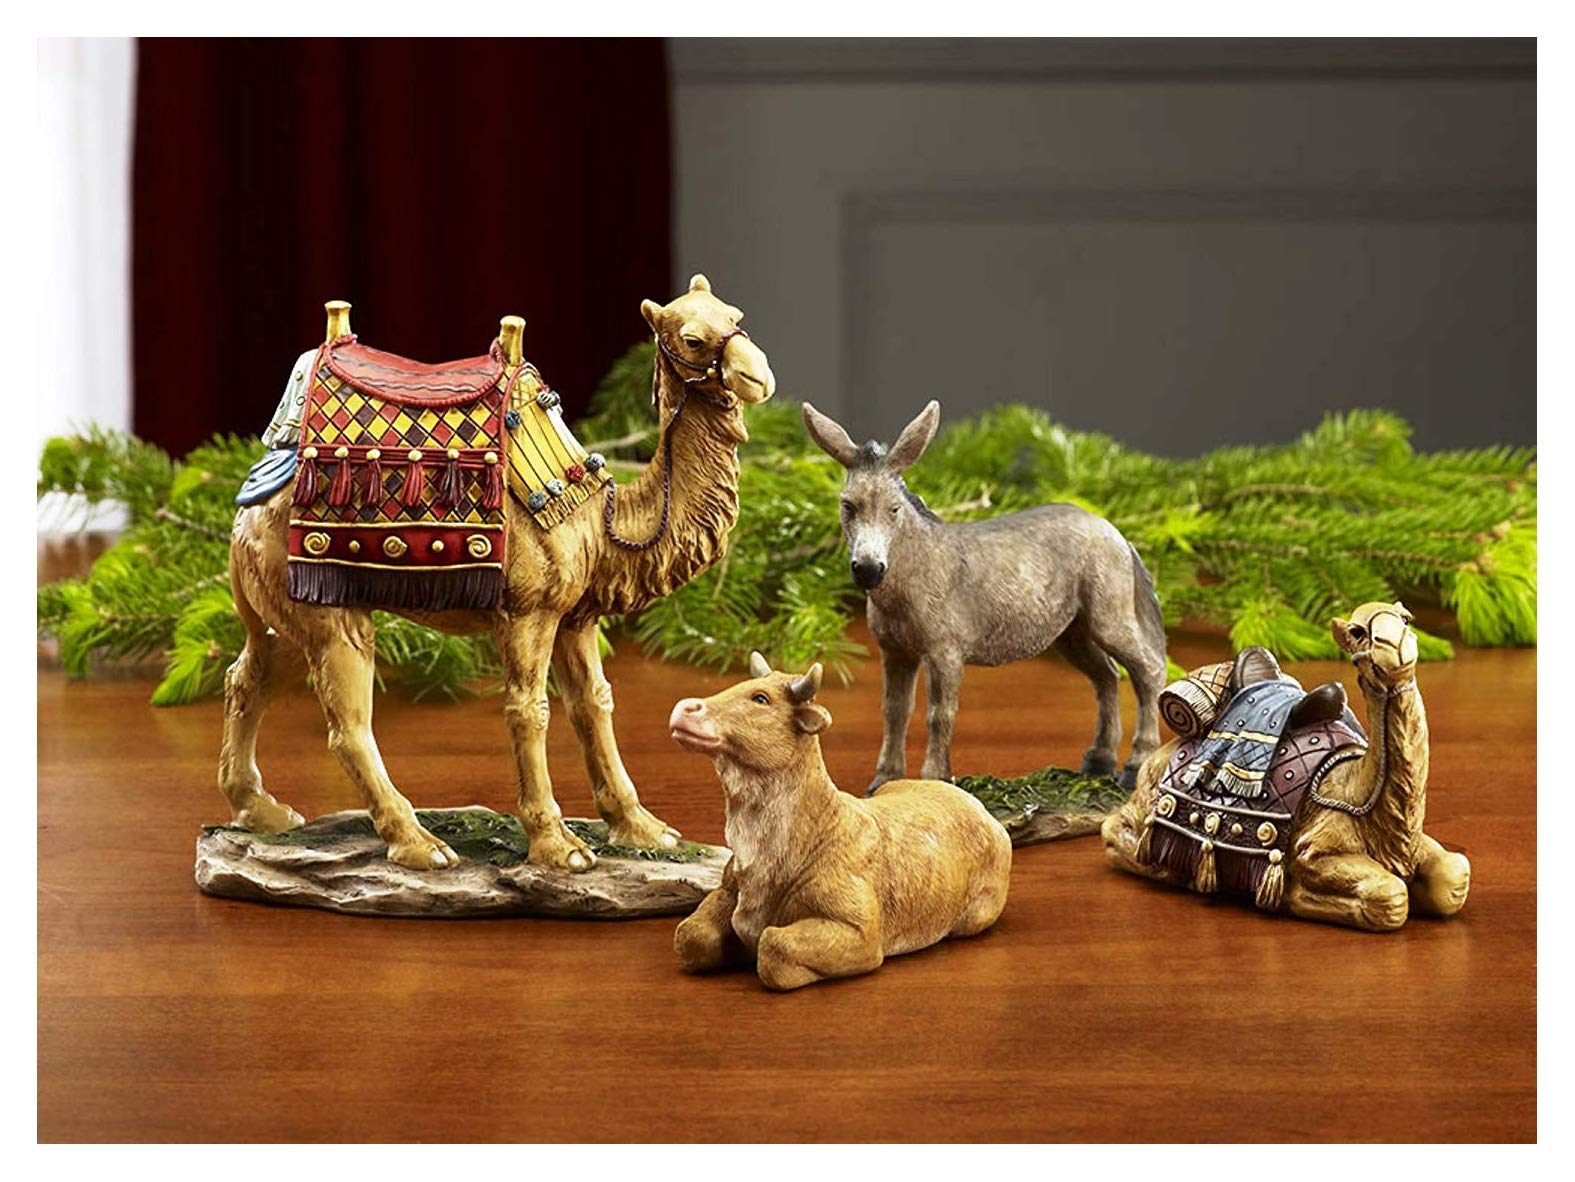 Set of 4 Christmas Nativity Animals Set - 10 inch Scale by Three Kings Gifts The Original Gifts of Christmas